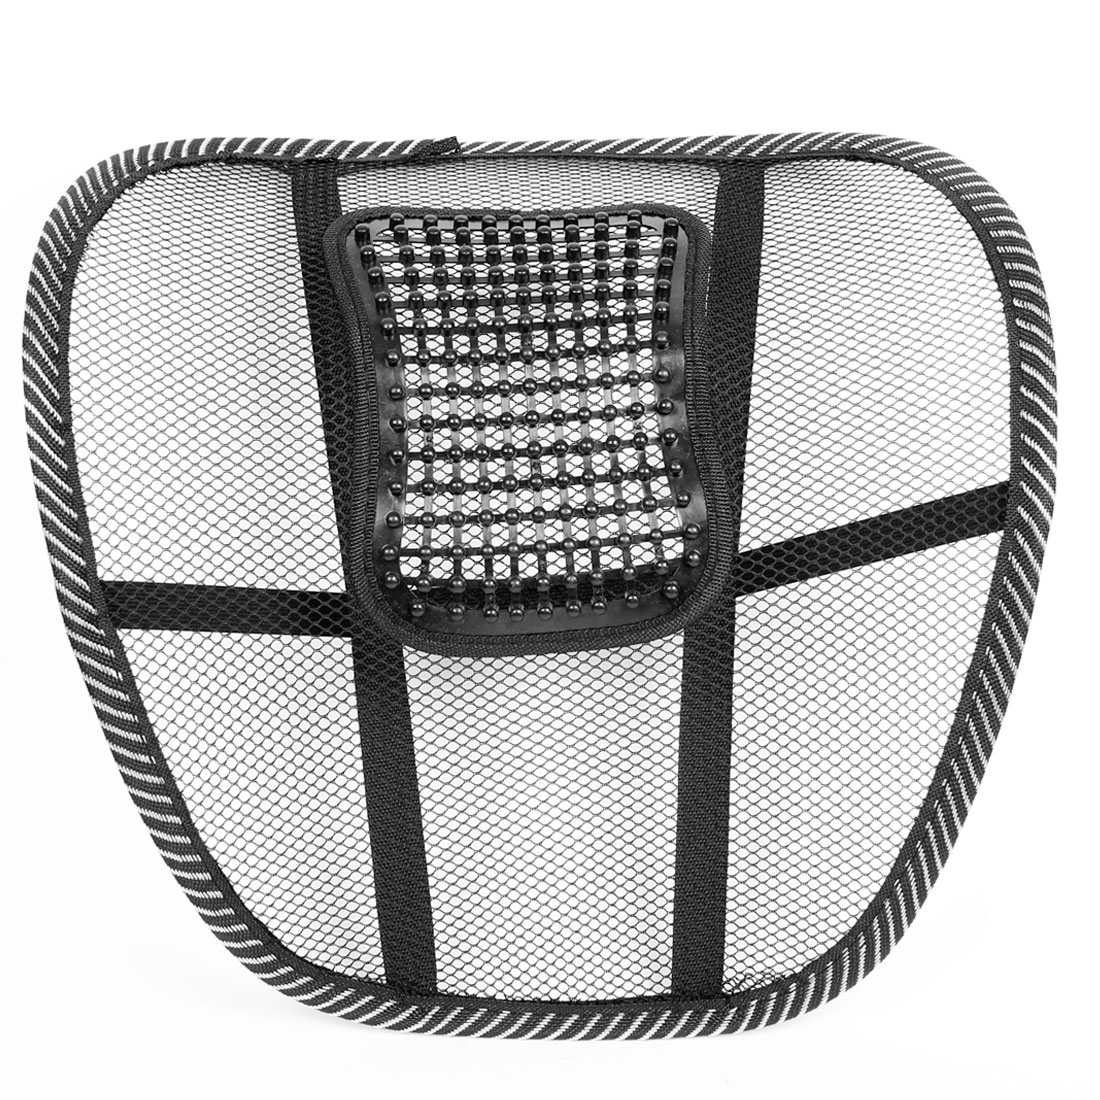 Waist Massage Cushion Elastic Strap Netted Massager Black White